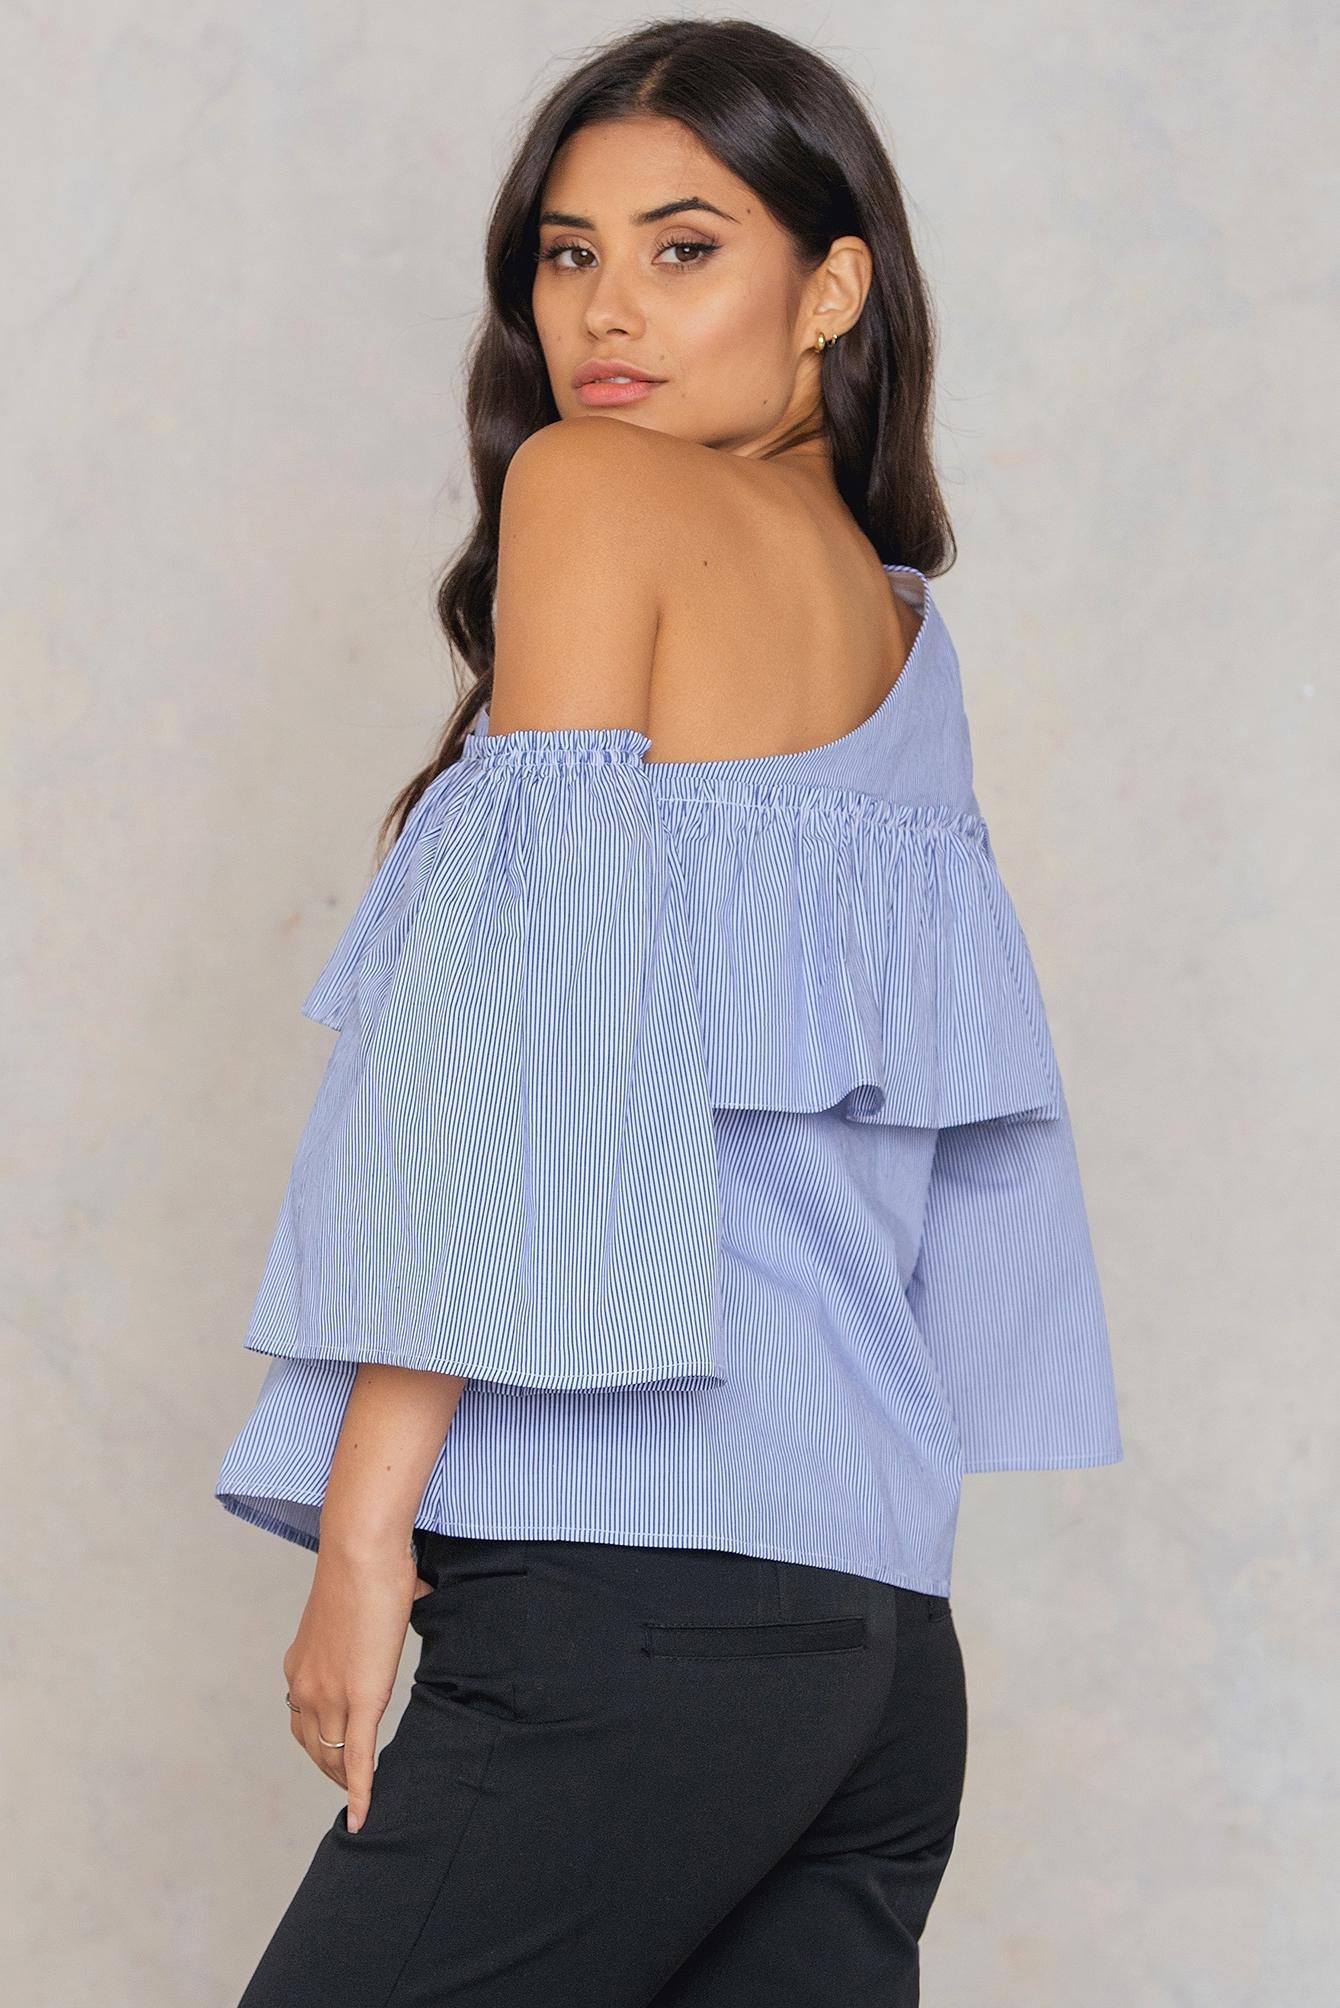 cdabdc6191305 ... Adeline One Shoulder Ruffle Top Blue white Stripe - Lyst. View  fullscreen